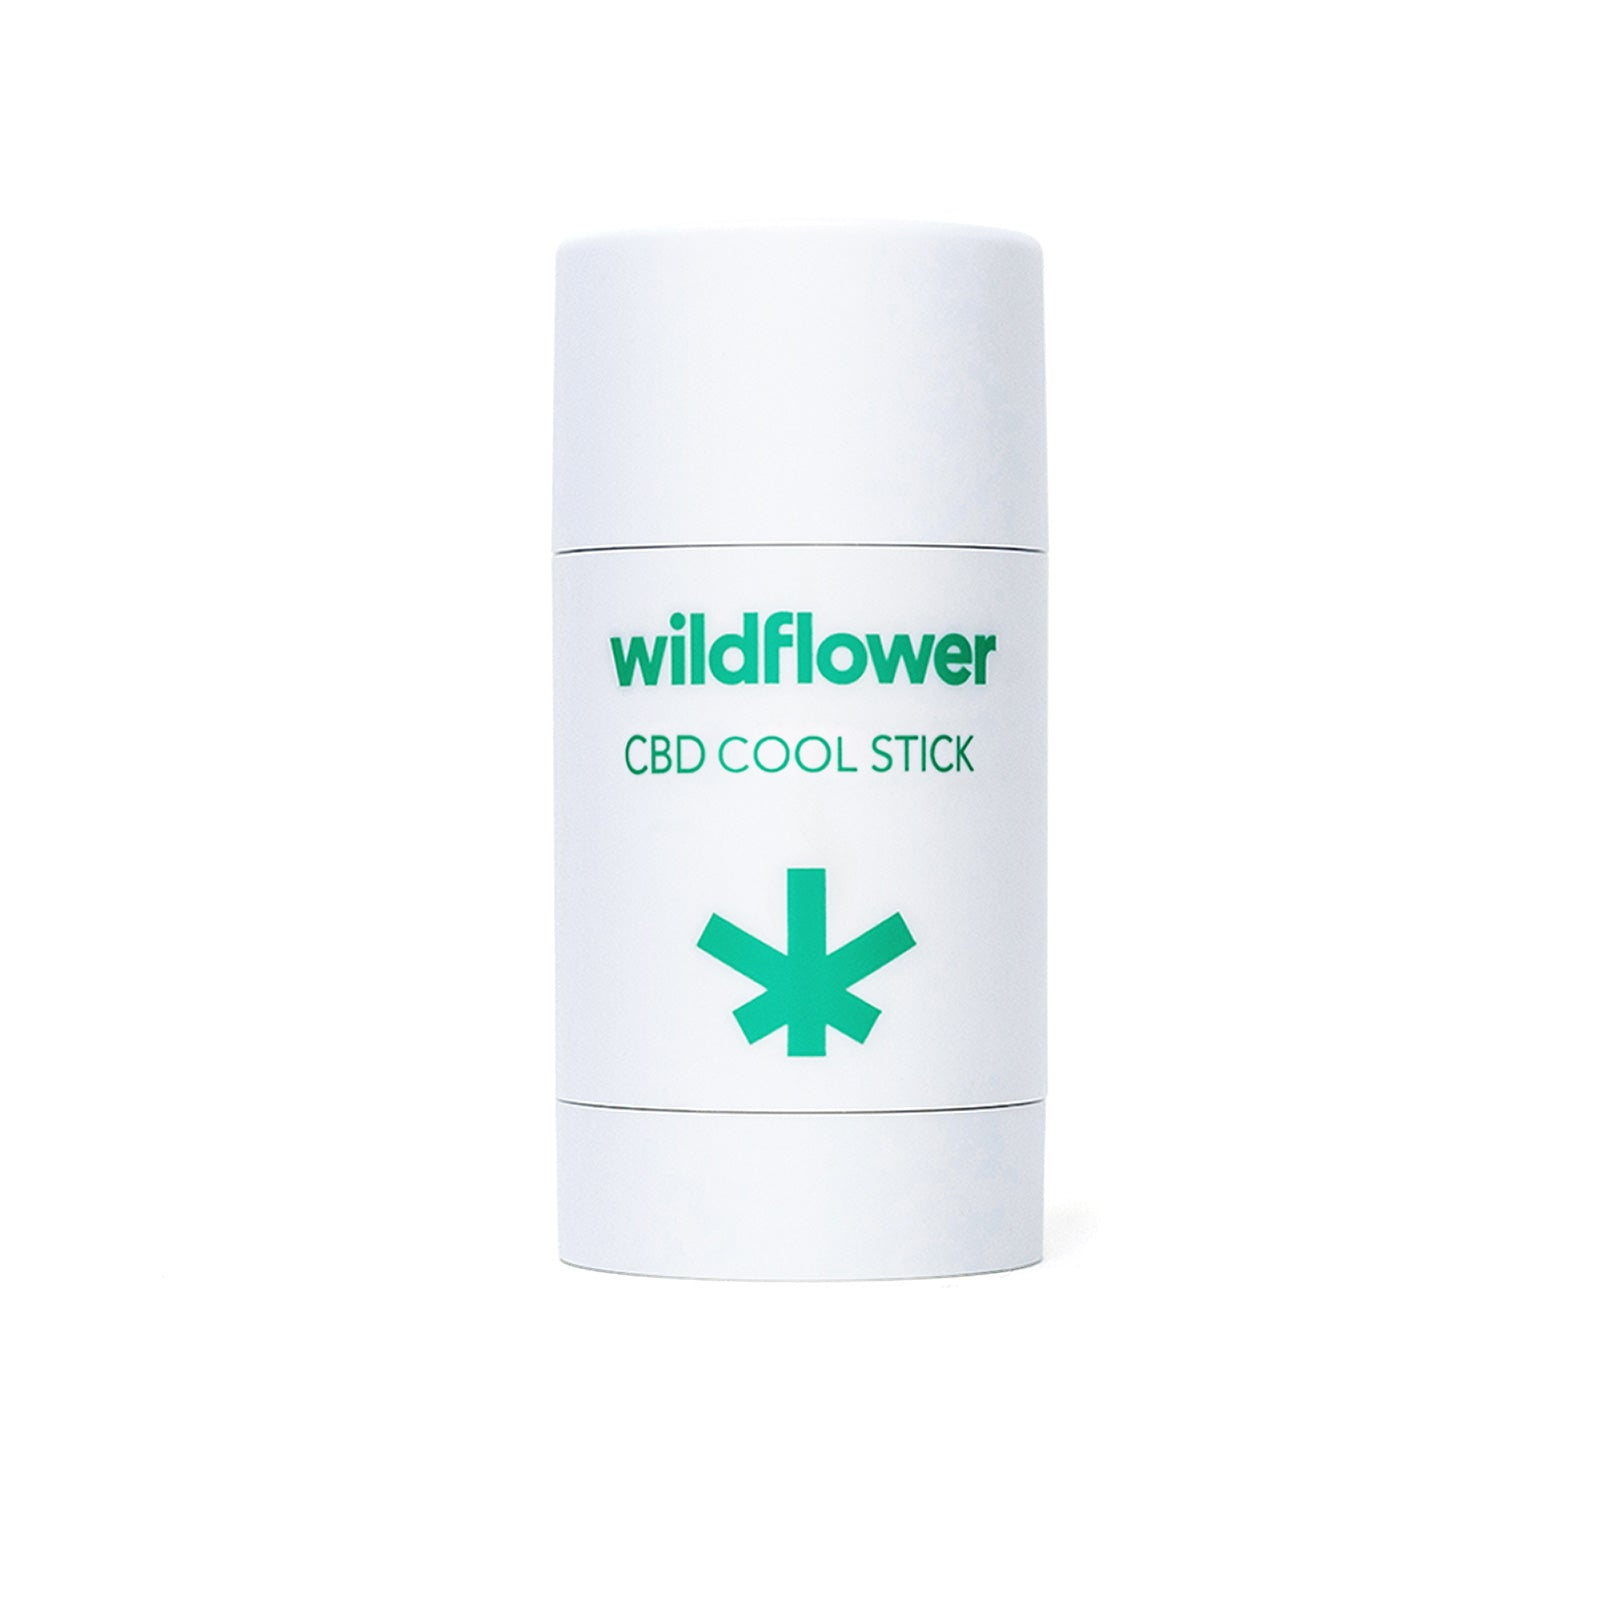 Wildflower CBD Coolstick 2